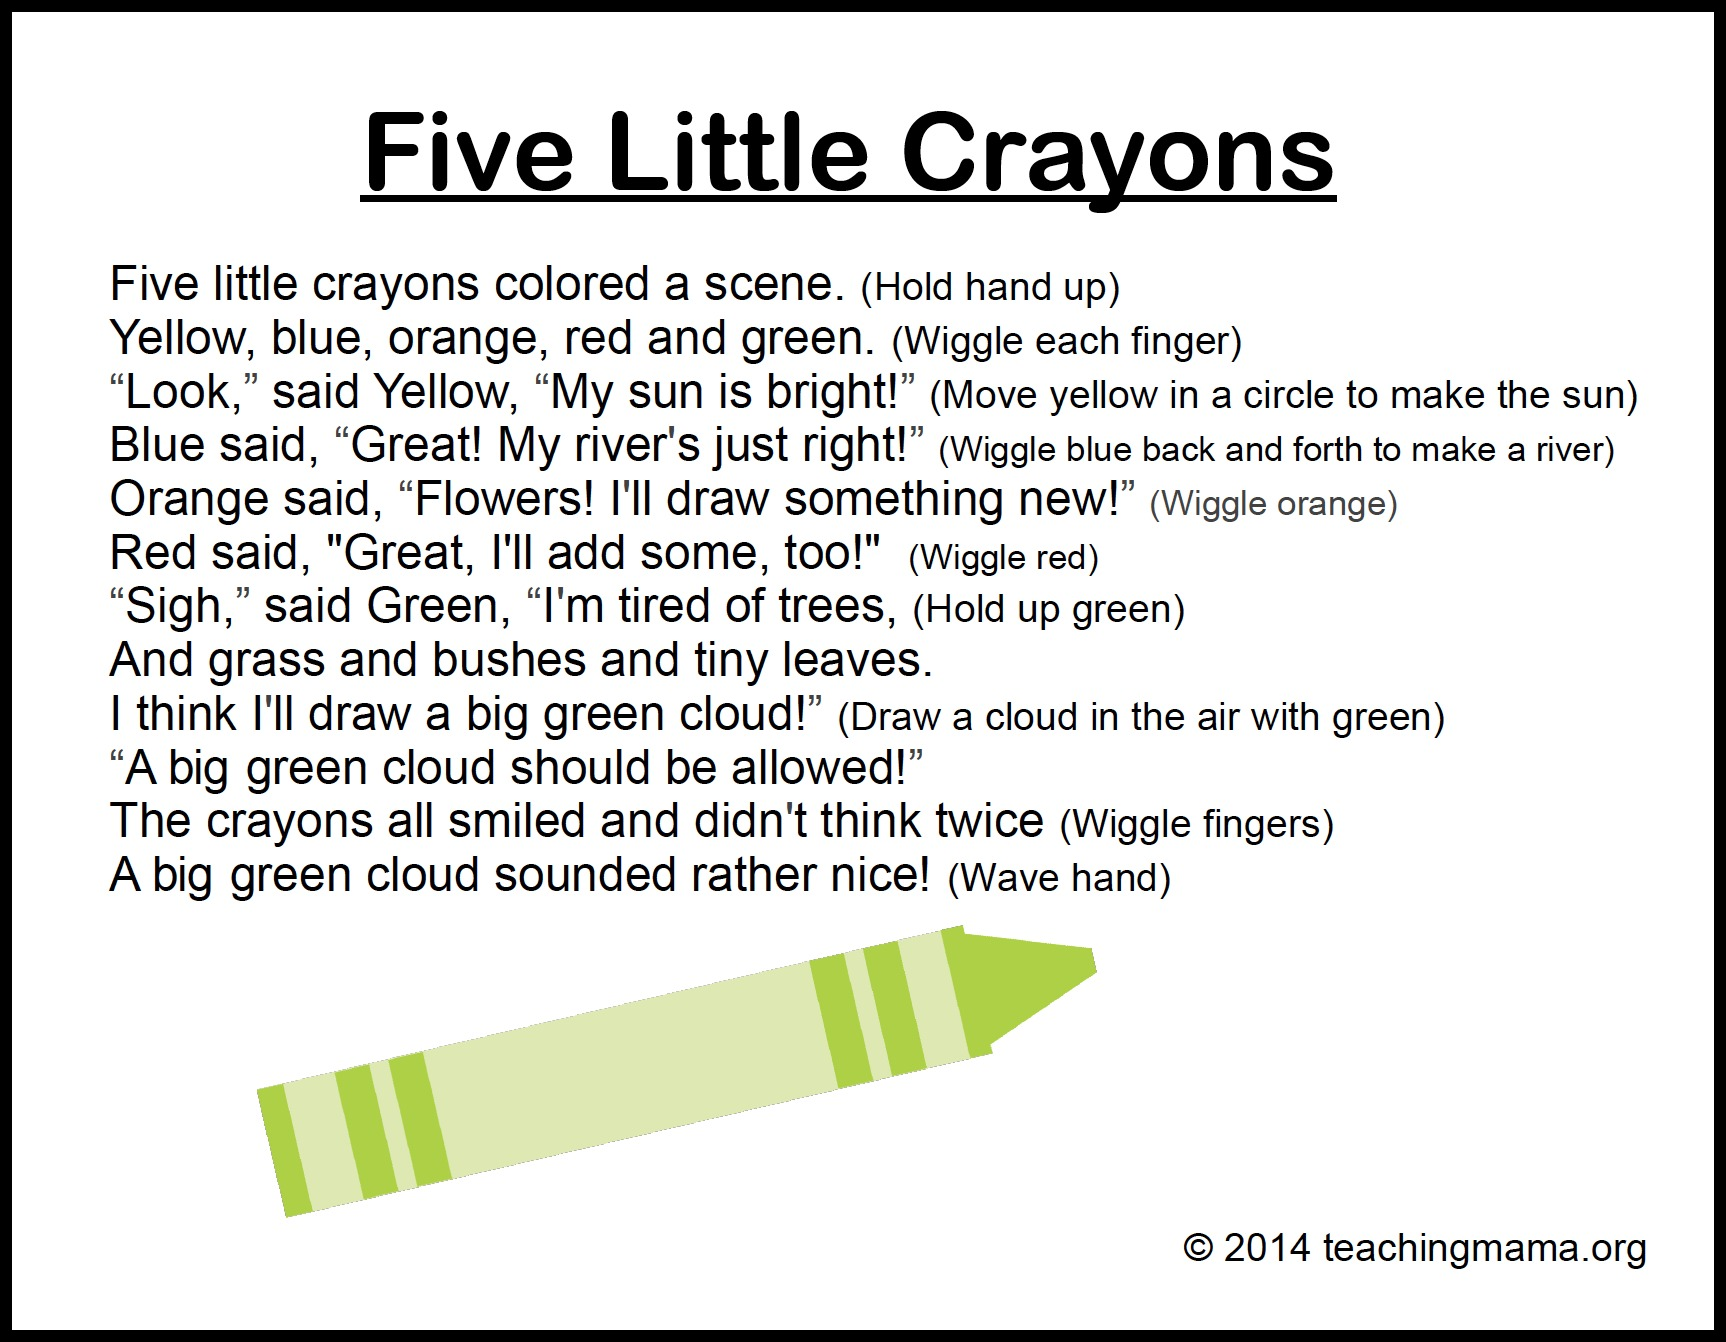 10 Preschool Songs About Colors